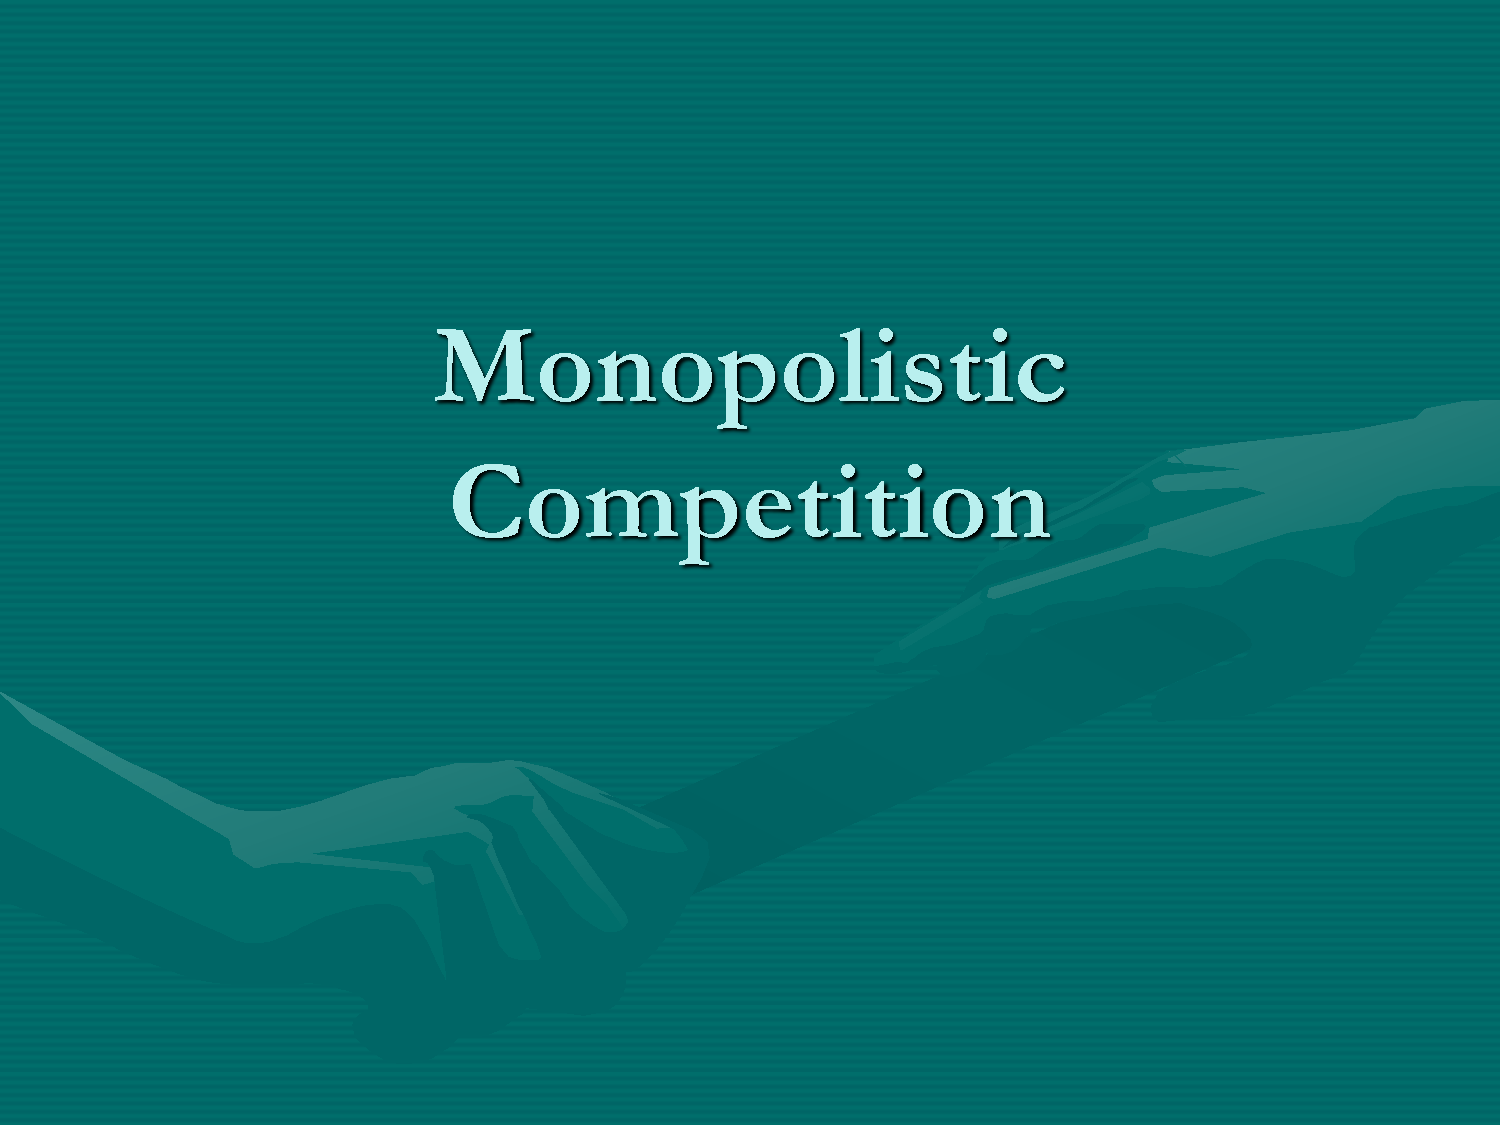 define monopolistic competition how price output is determined define monopolistic competition